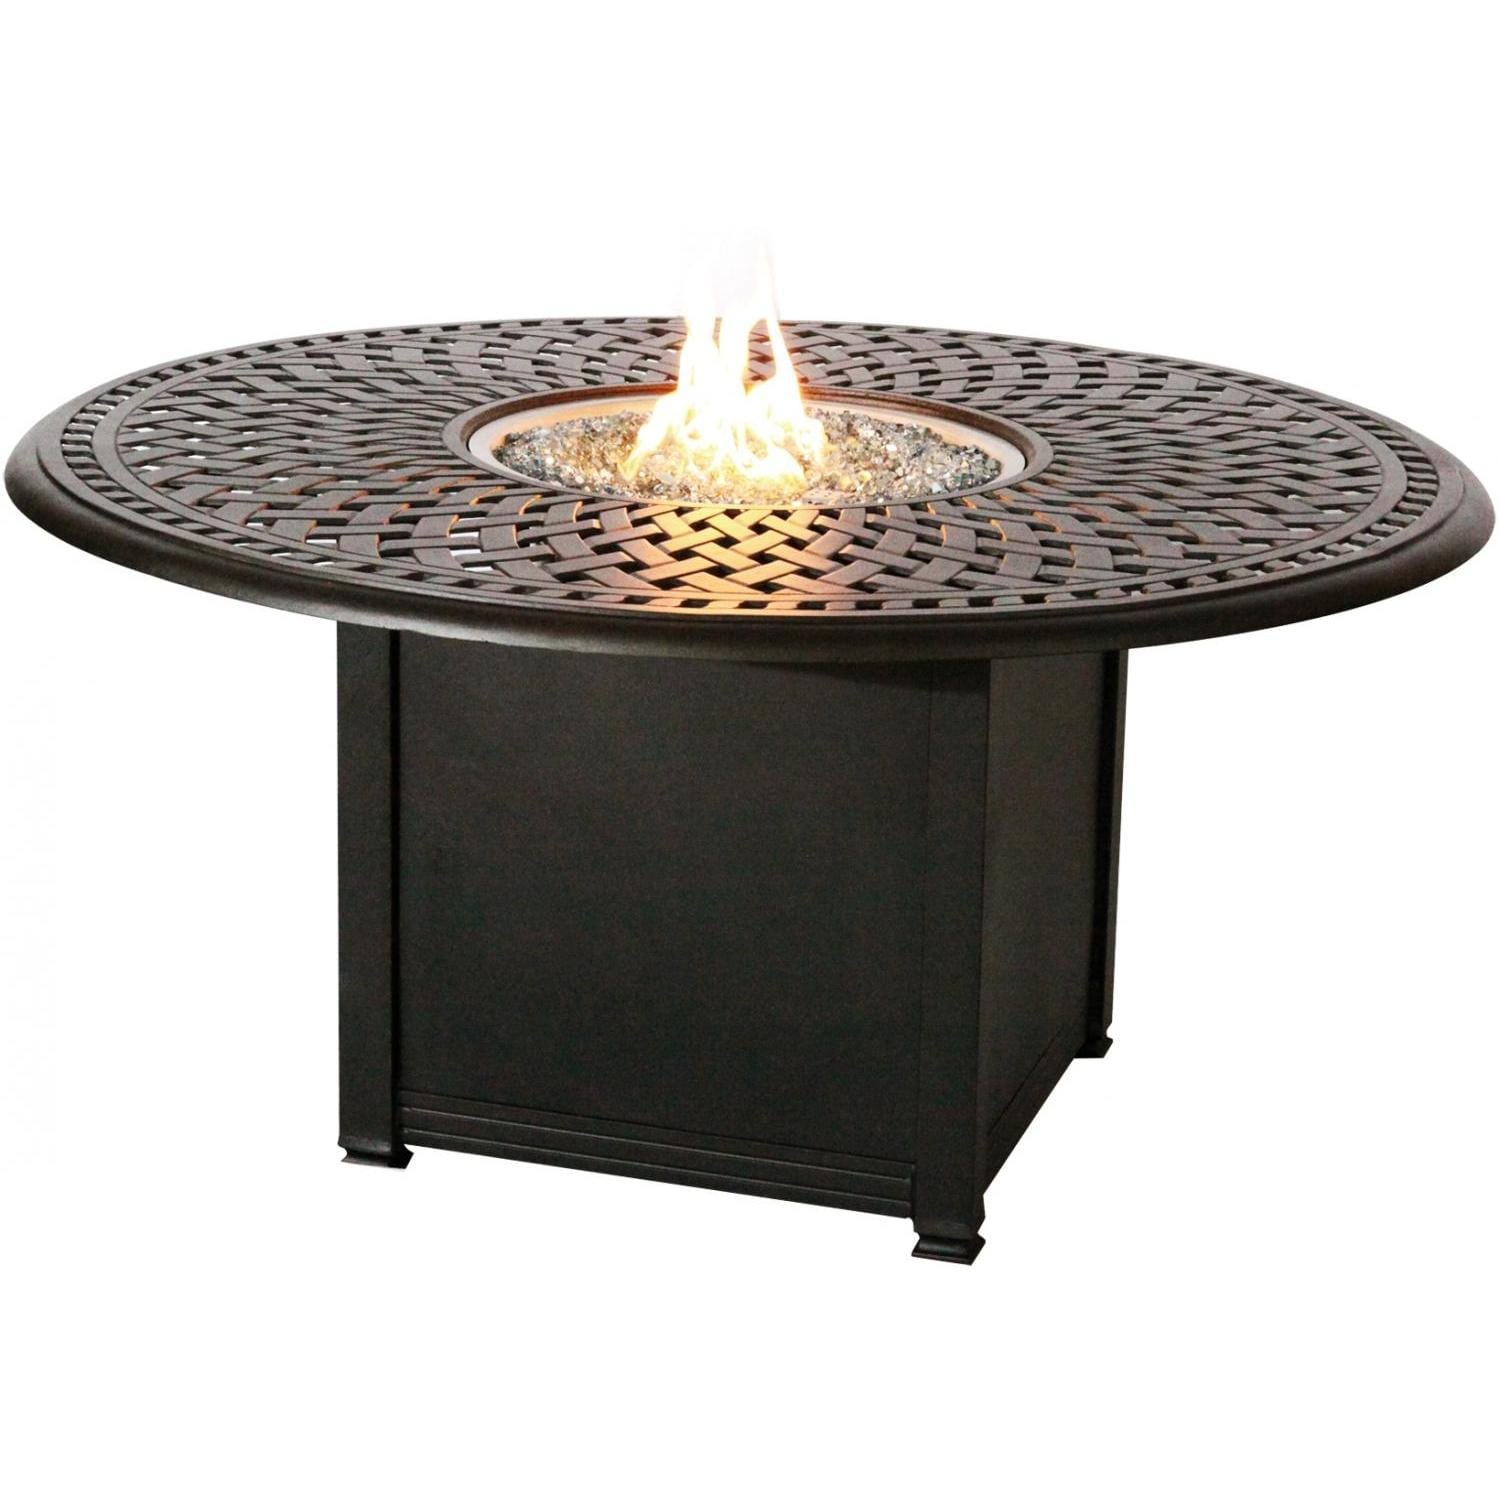 Darlee Signature 60-Inch Propane Fire Pit Dining Table